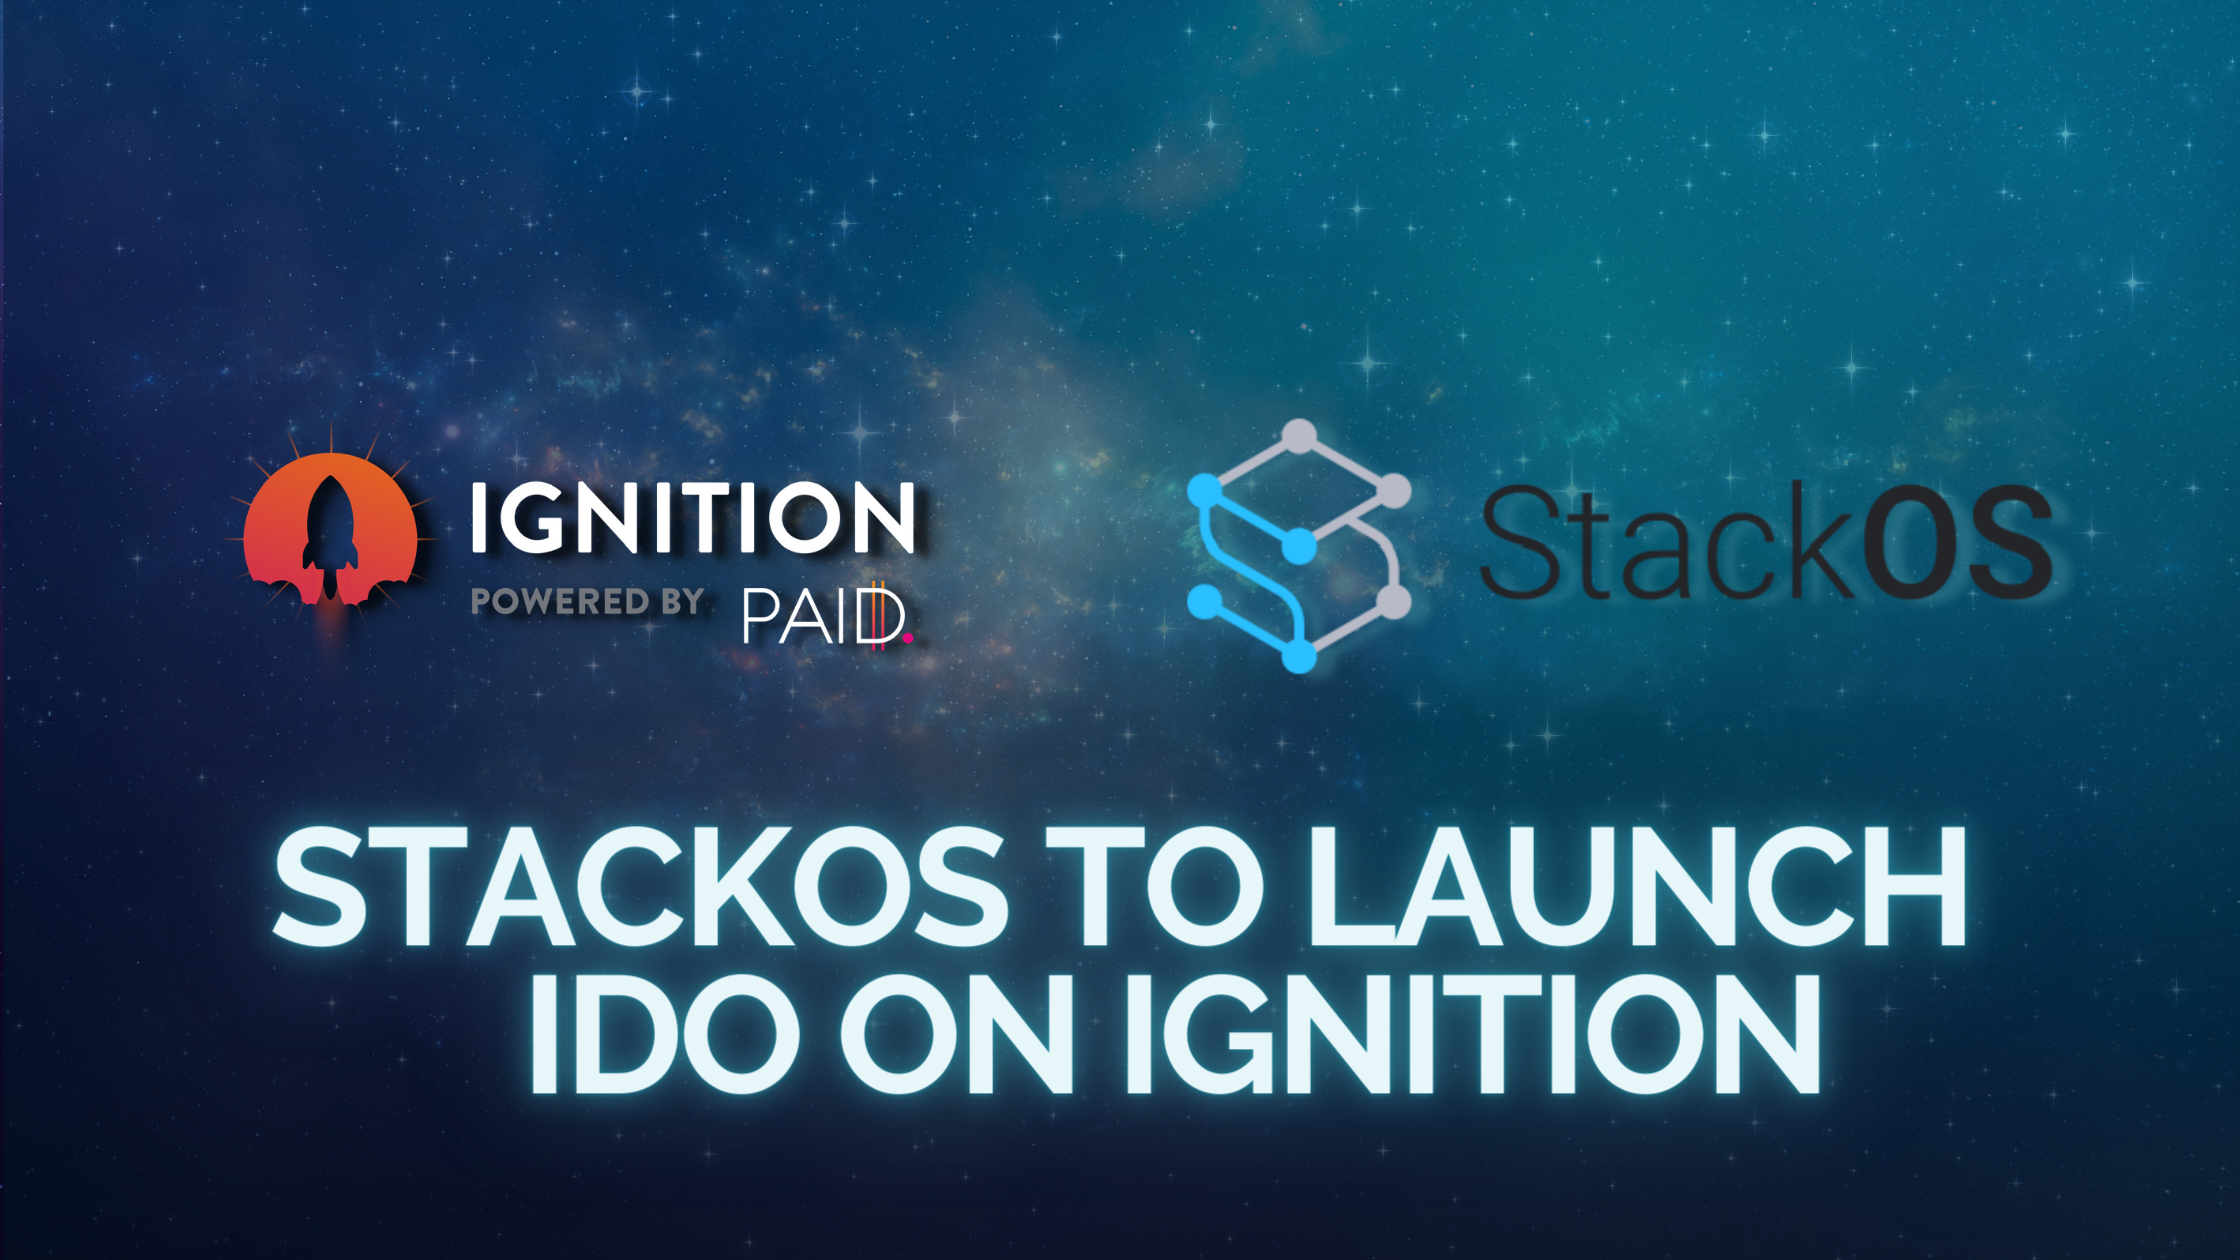 StackOS to launch on IDO Ignition